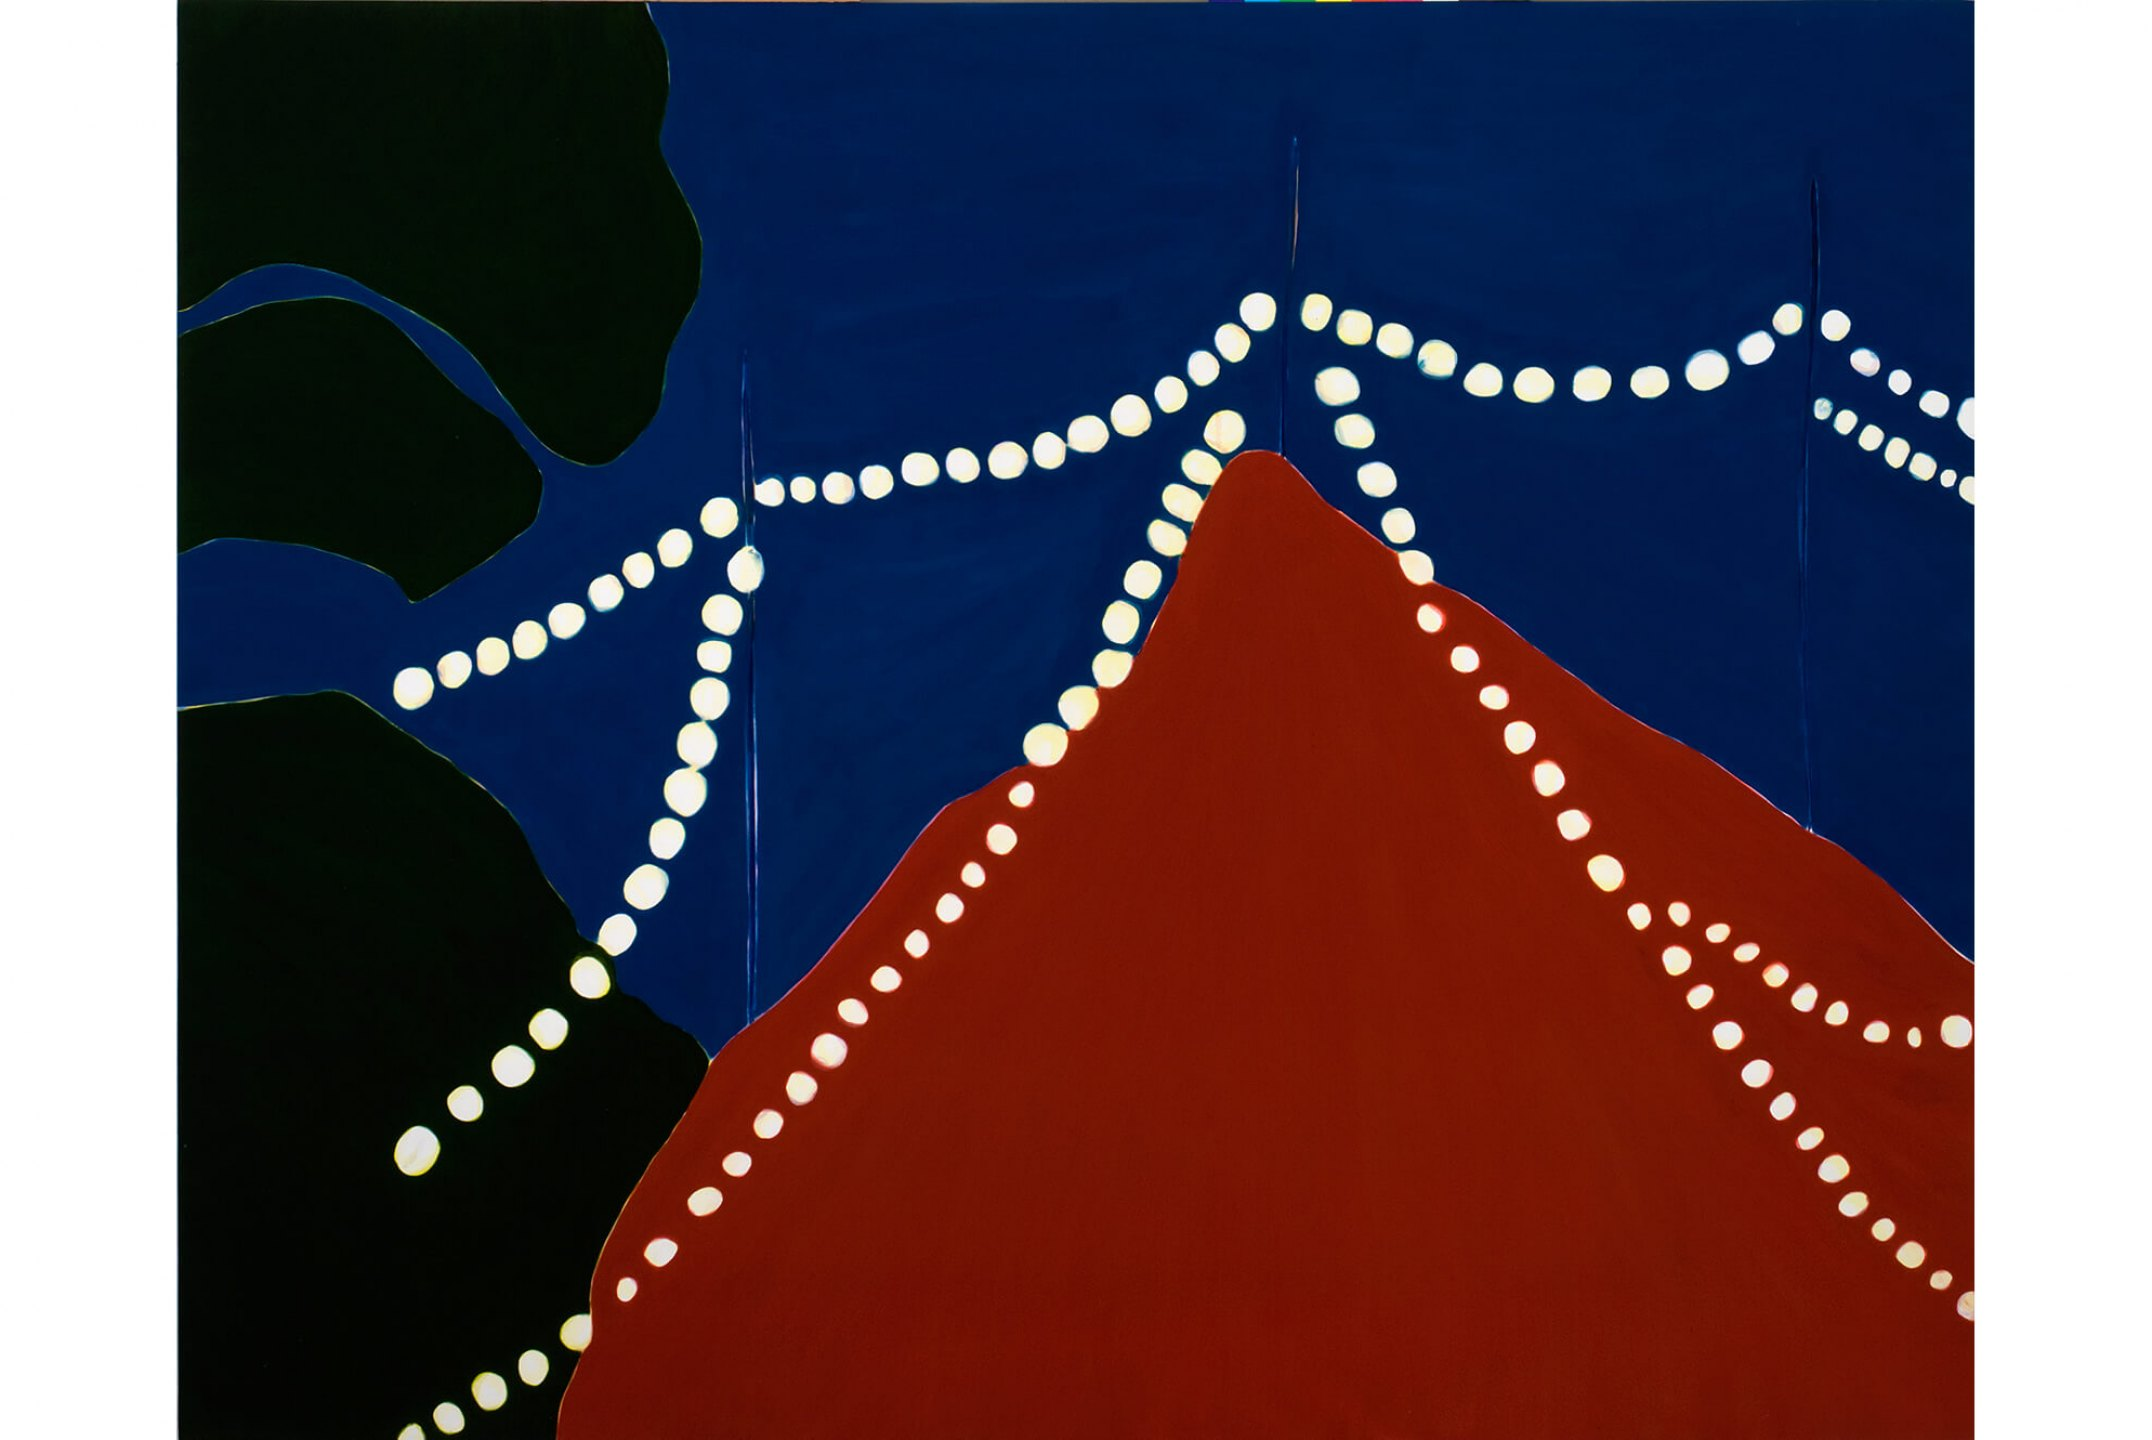 Patricia Leite, <em>Untitled (Lamp Bulbs III)</em>,&nbsp;2009, oil on wood, 180&nbsp;×&nbsp;200 cm - Mendes Wood DM